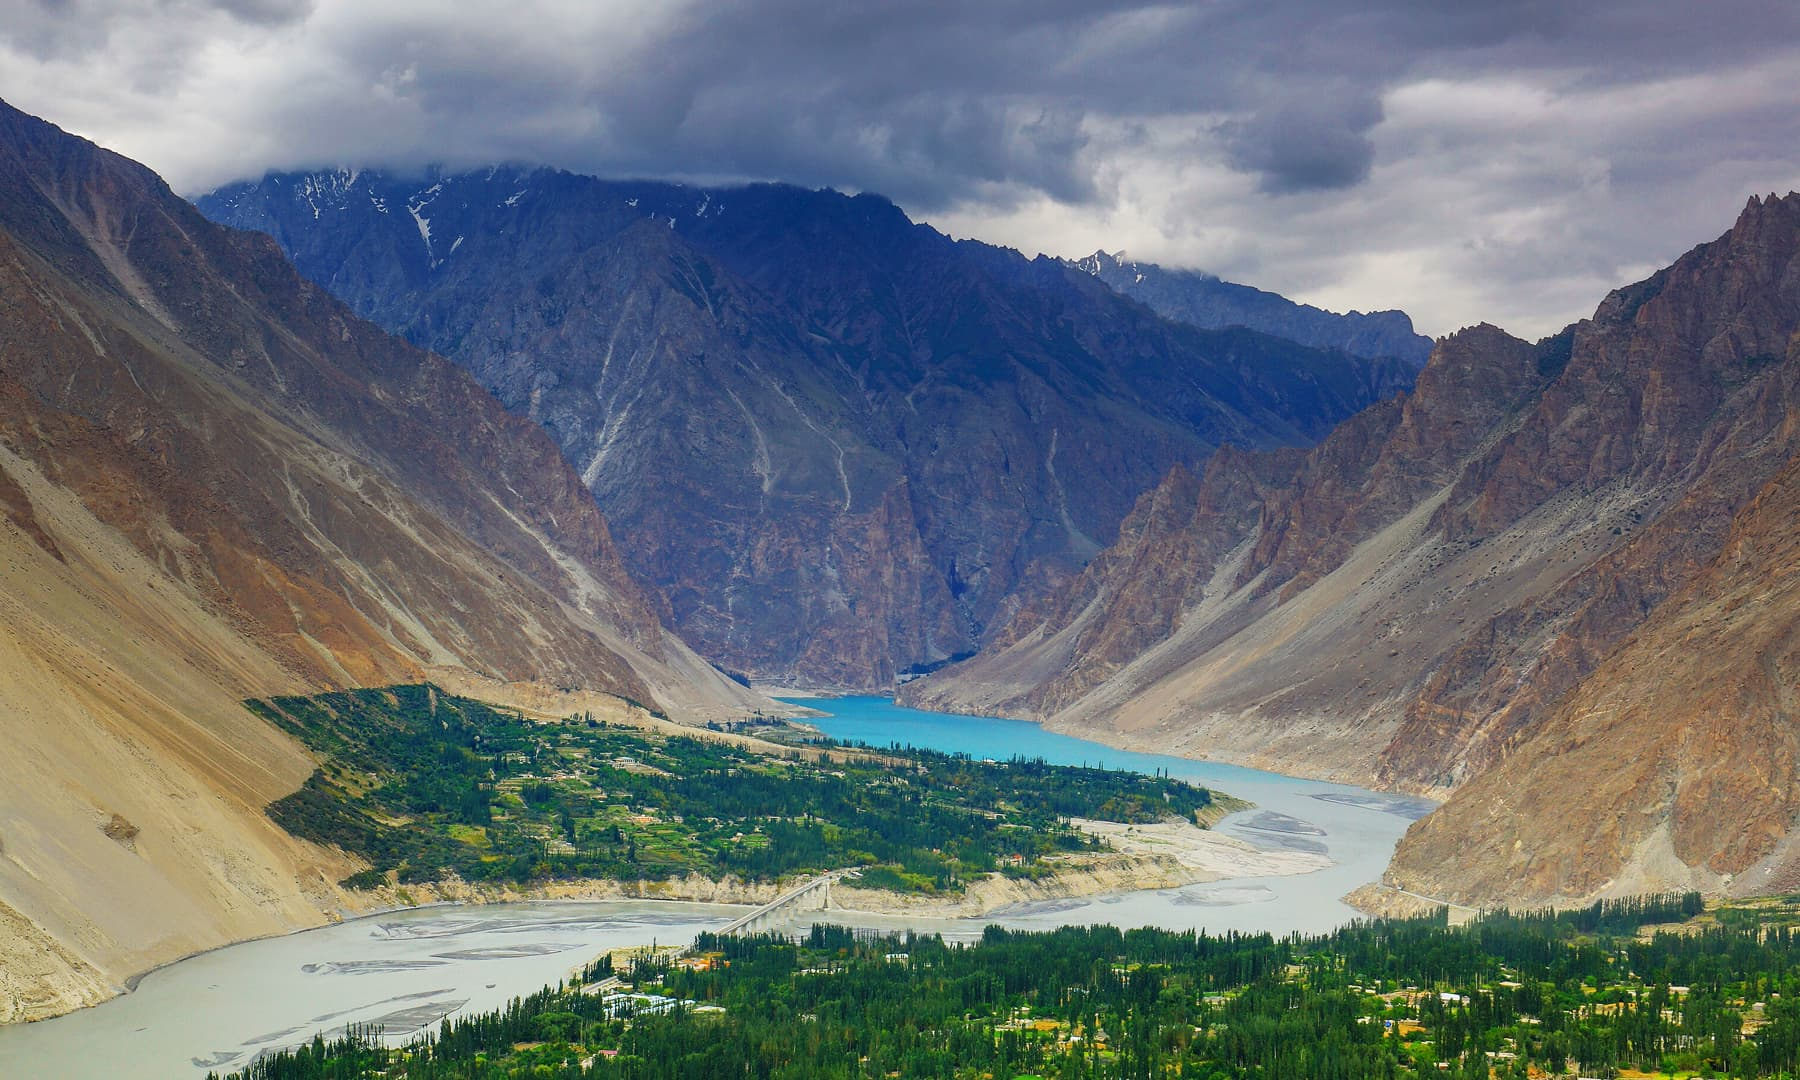 A stunning view of the Hunza River.